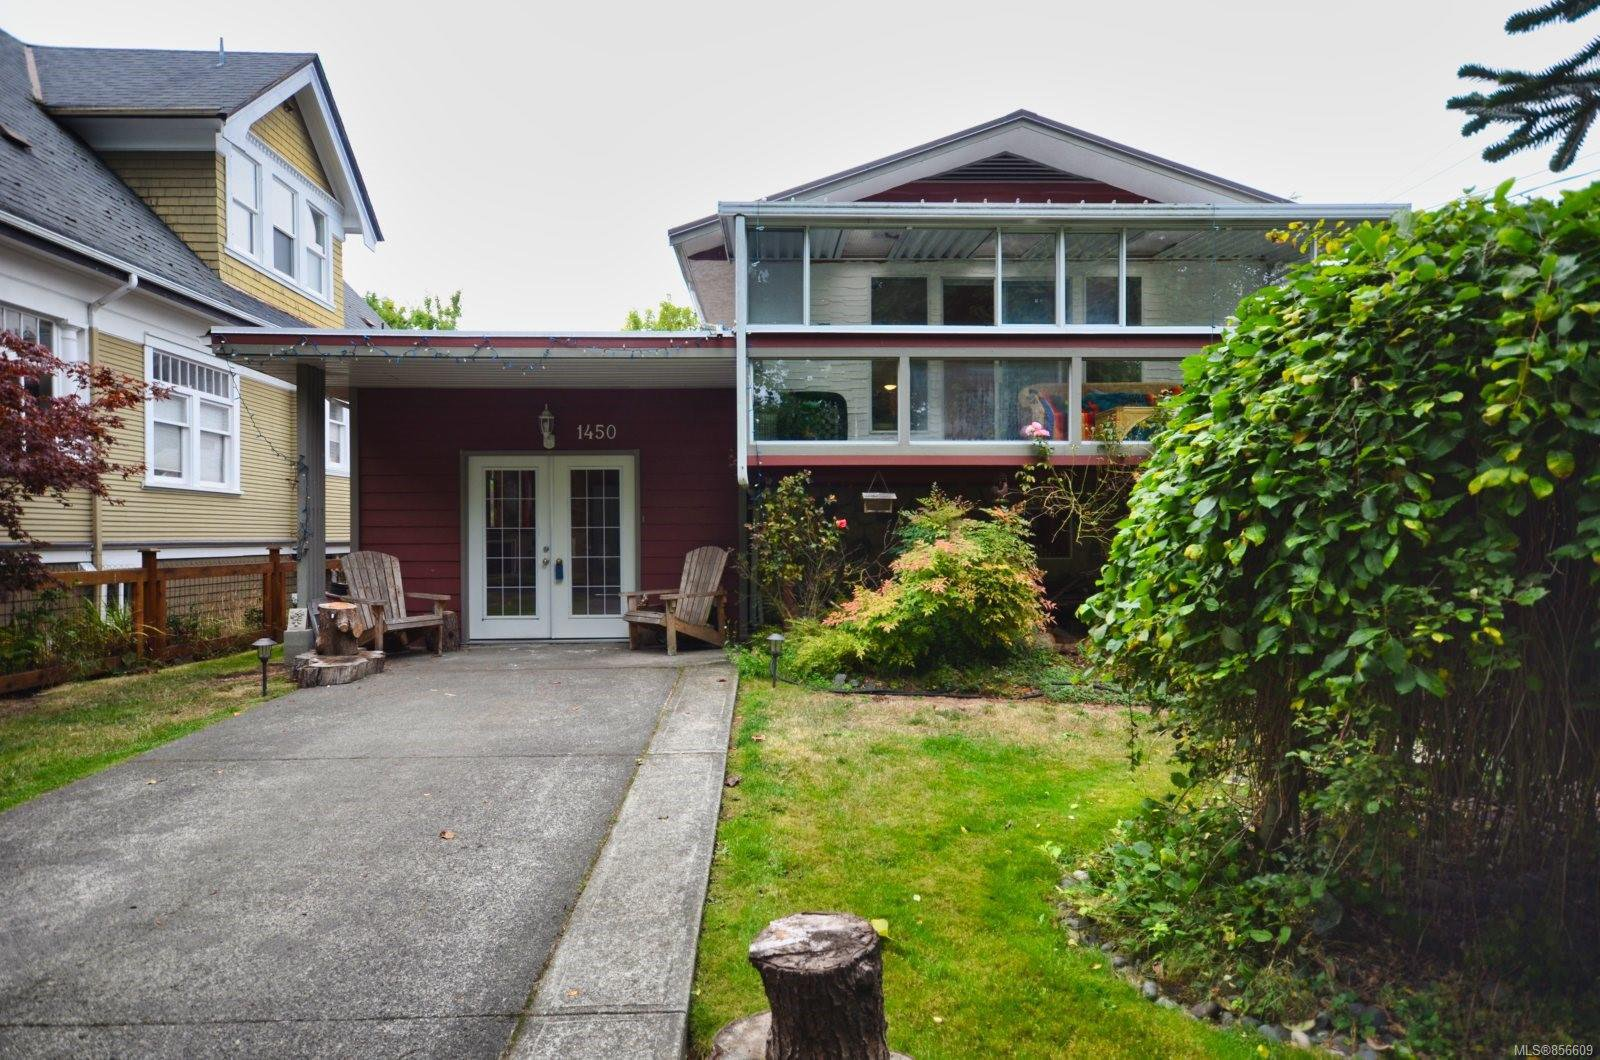 Main Photo: 1450 Hamley St in : Vi Fairfield West House for sale (Victoria)  : MLS®# 856609